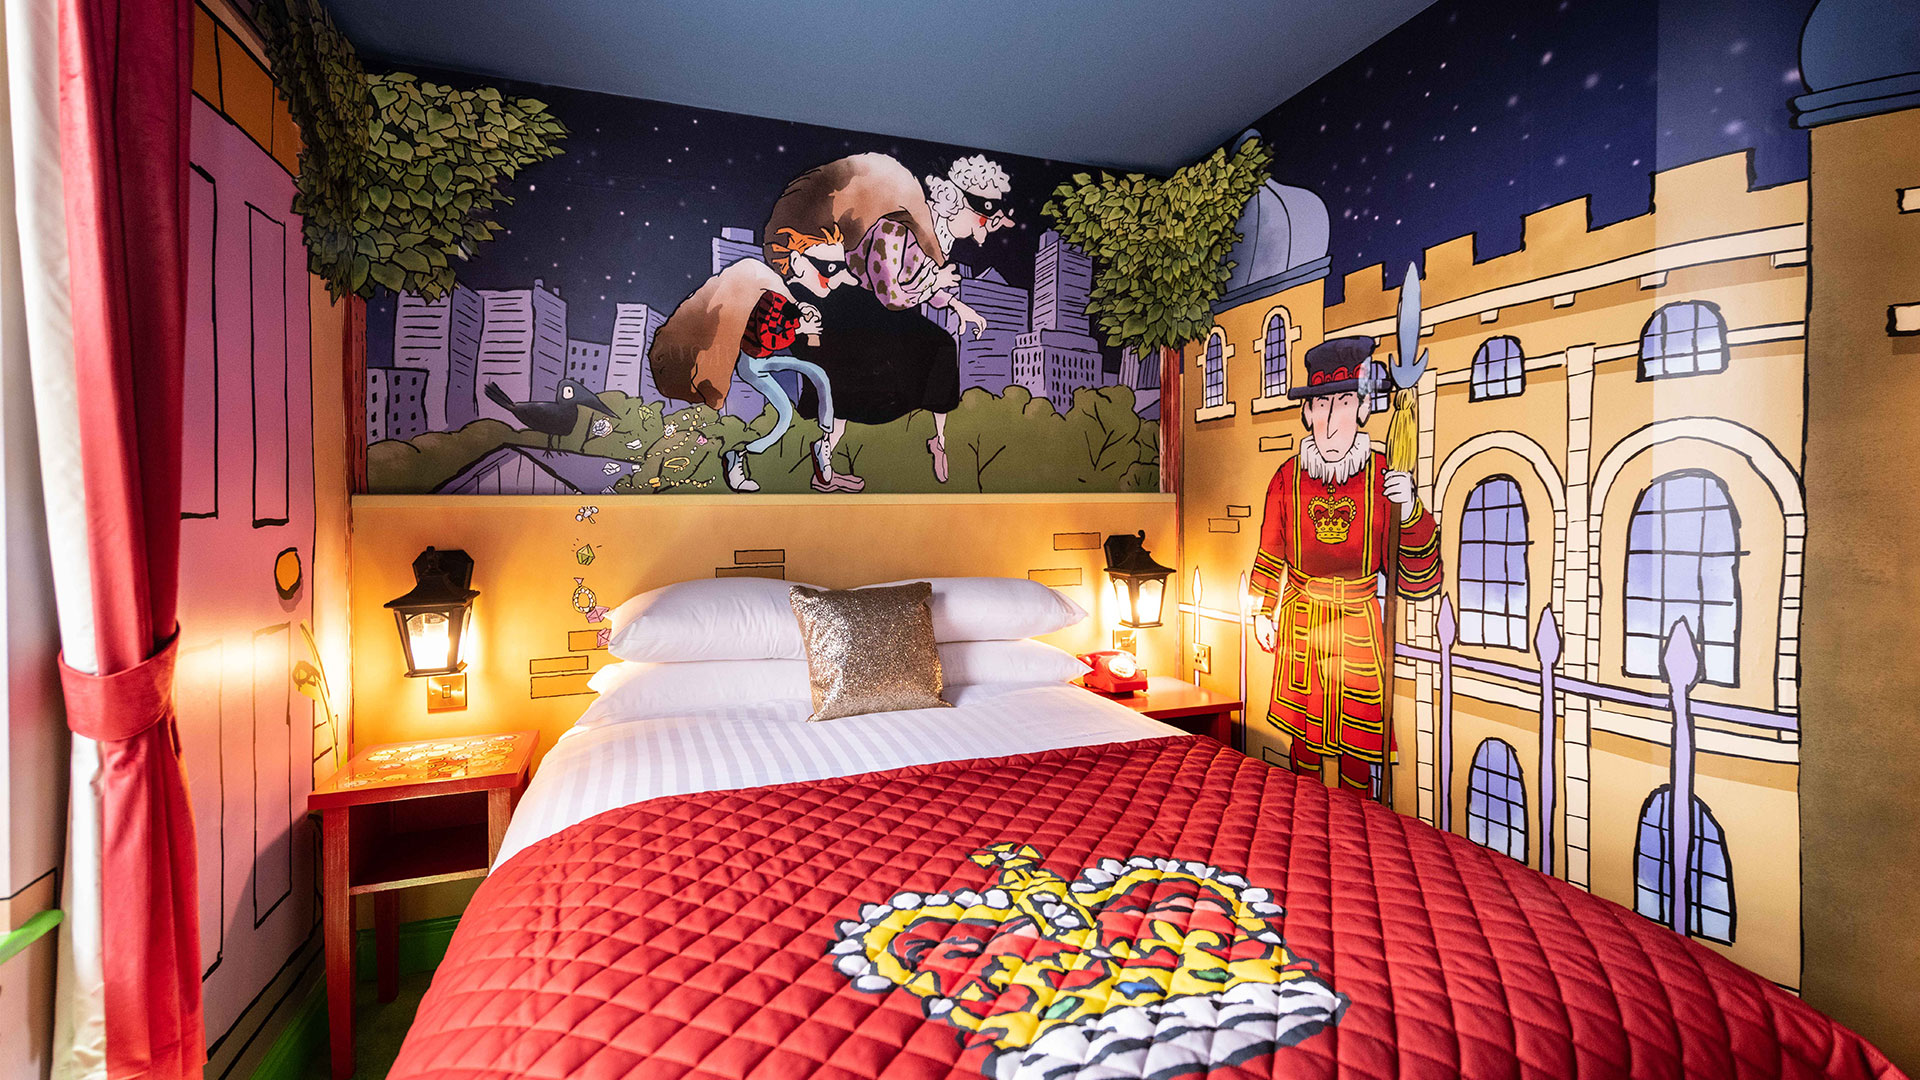 Gangsta Granny The Room - Alton Towers Hotel